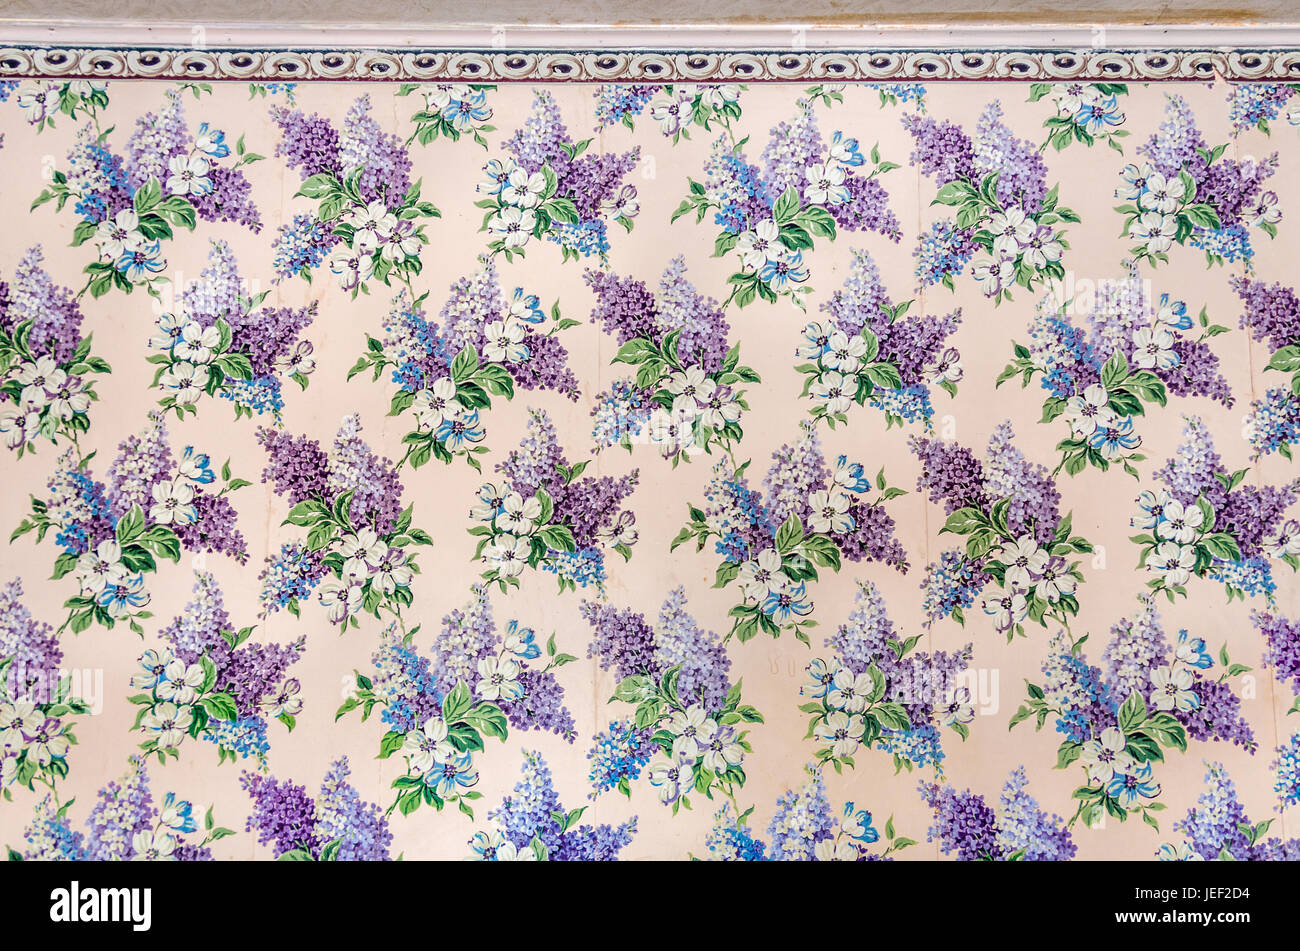 Beautiful Vintage Wallpaper With A Floral Design Consisting Of